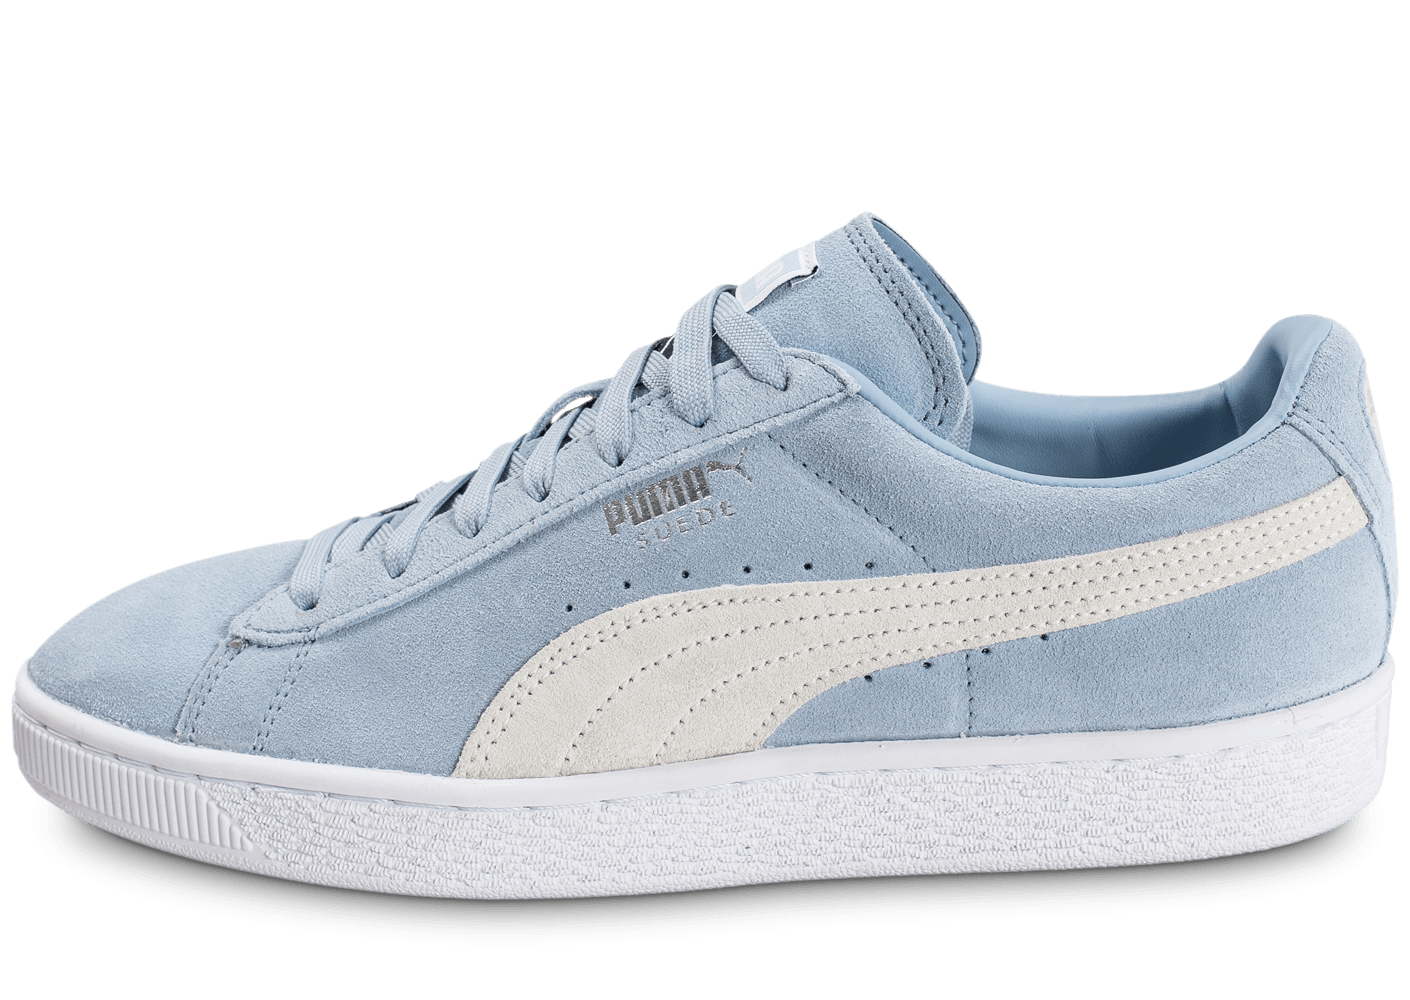 puma suede classic blue fog chaussures homme chausport. Black Bedroom Furniture Sets. Home Design Ideas